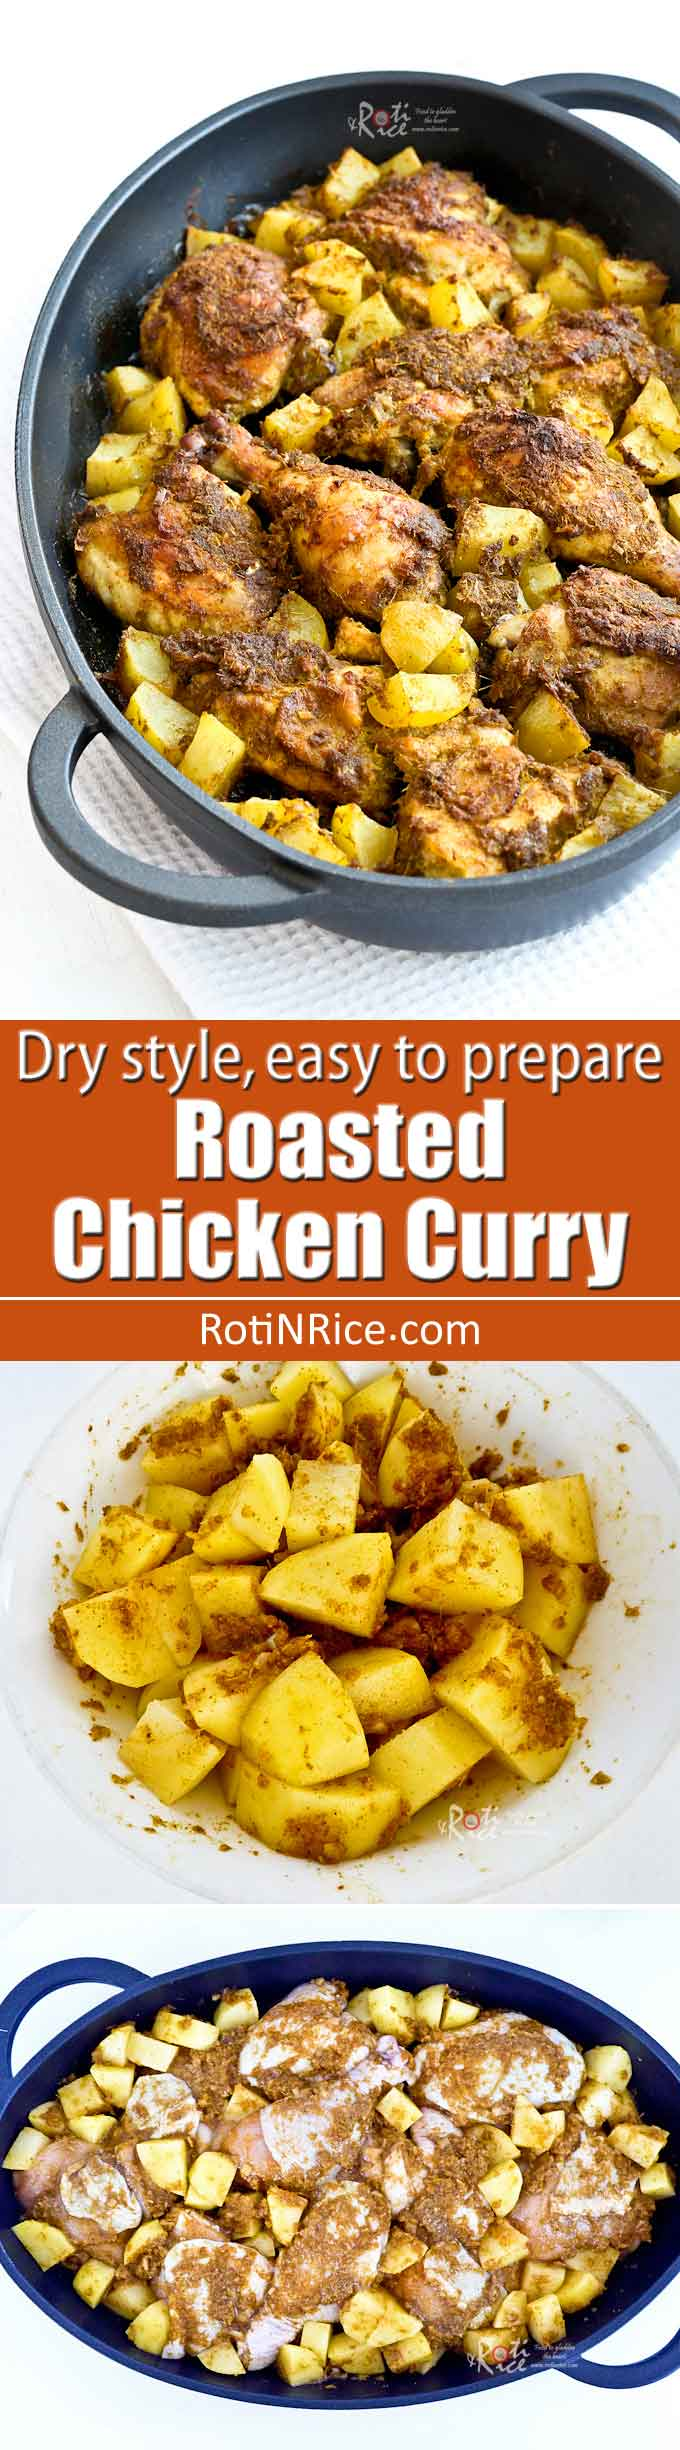 This dry style Roasted Chicken Curry is much easier to prepare than the stove top version. Simply combined all ingredients and roast it to perfection.   RotiNRice.com